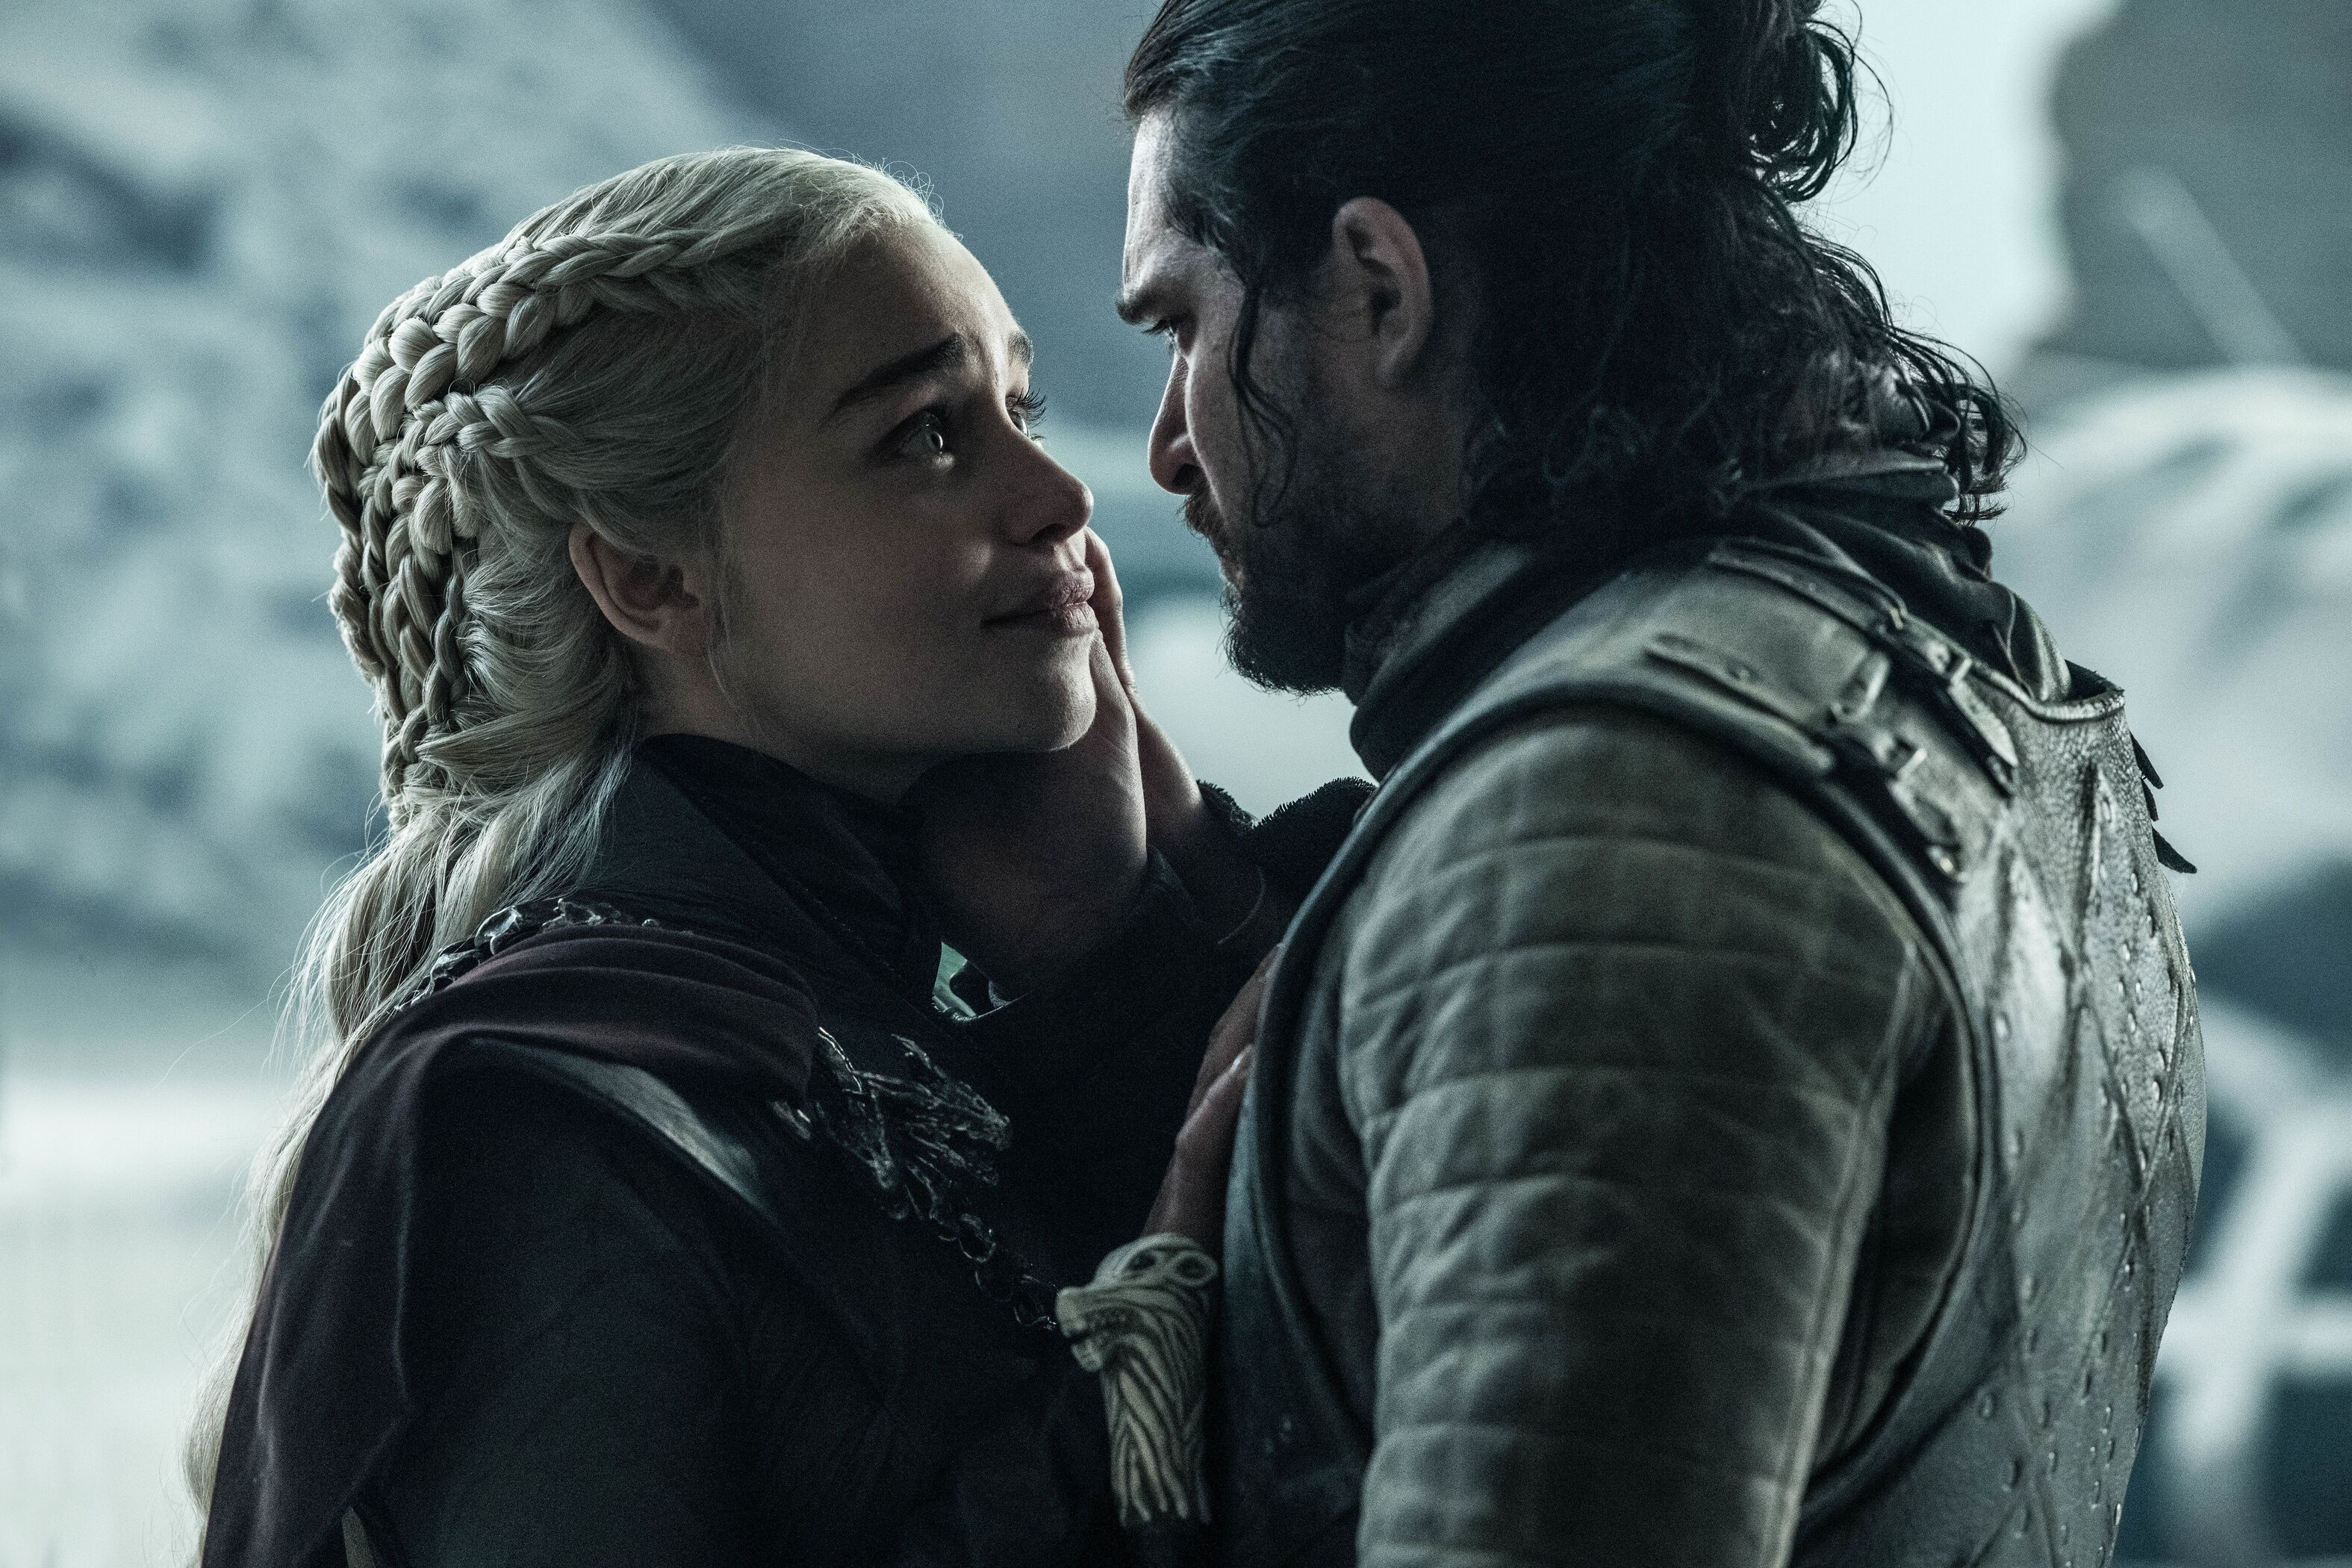 Game of Thrones: 5 problems with Jon Snow's ending